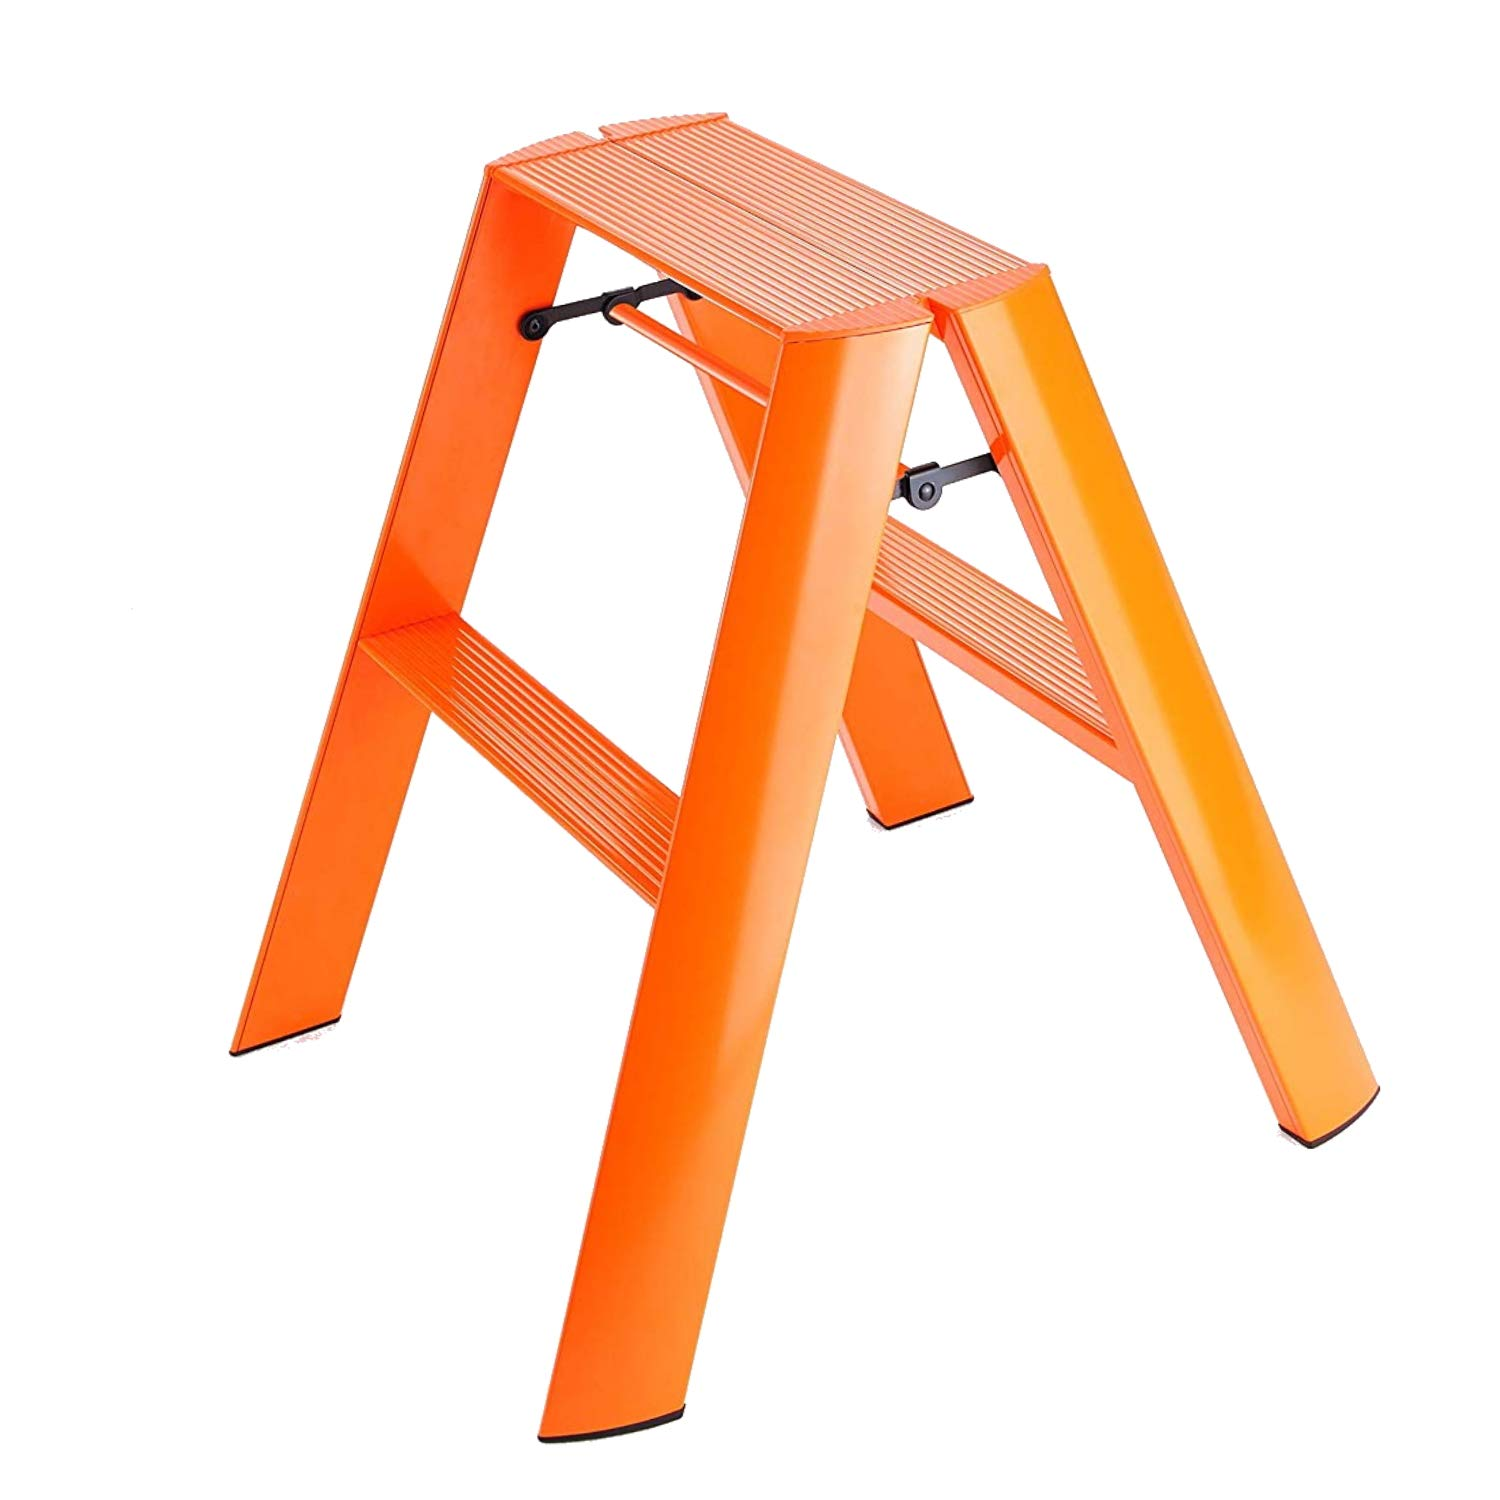 Stupendous Hasegawa Ladders Lucano Step Stool Orange Caraccident5 Cool Chair Designs And Ideas Caraccident5Info